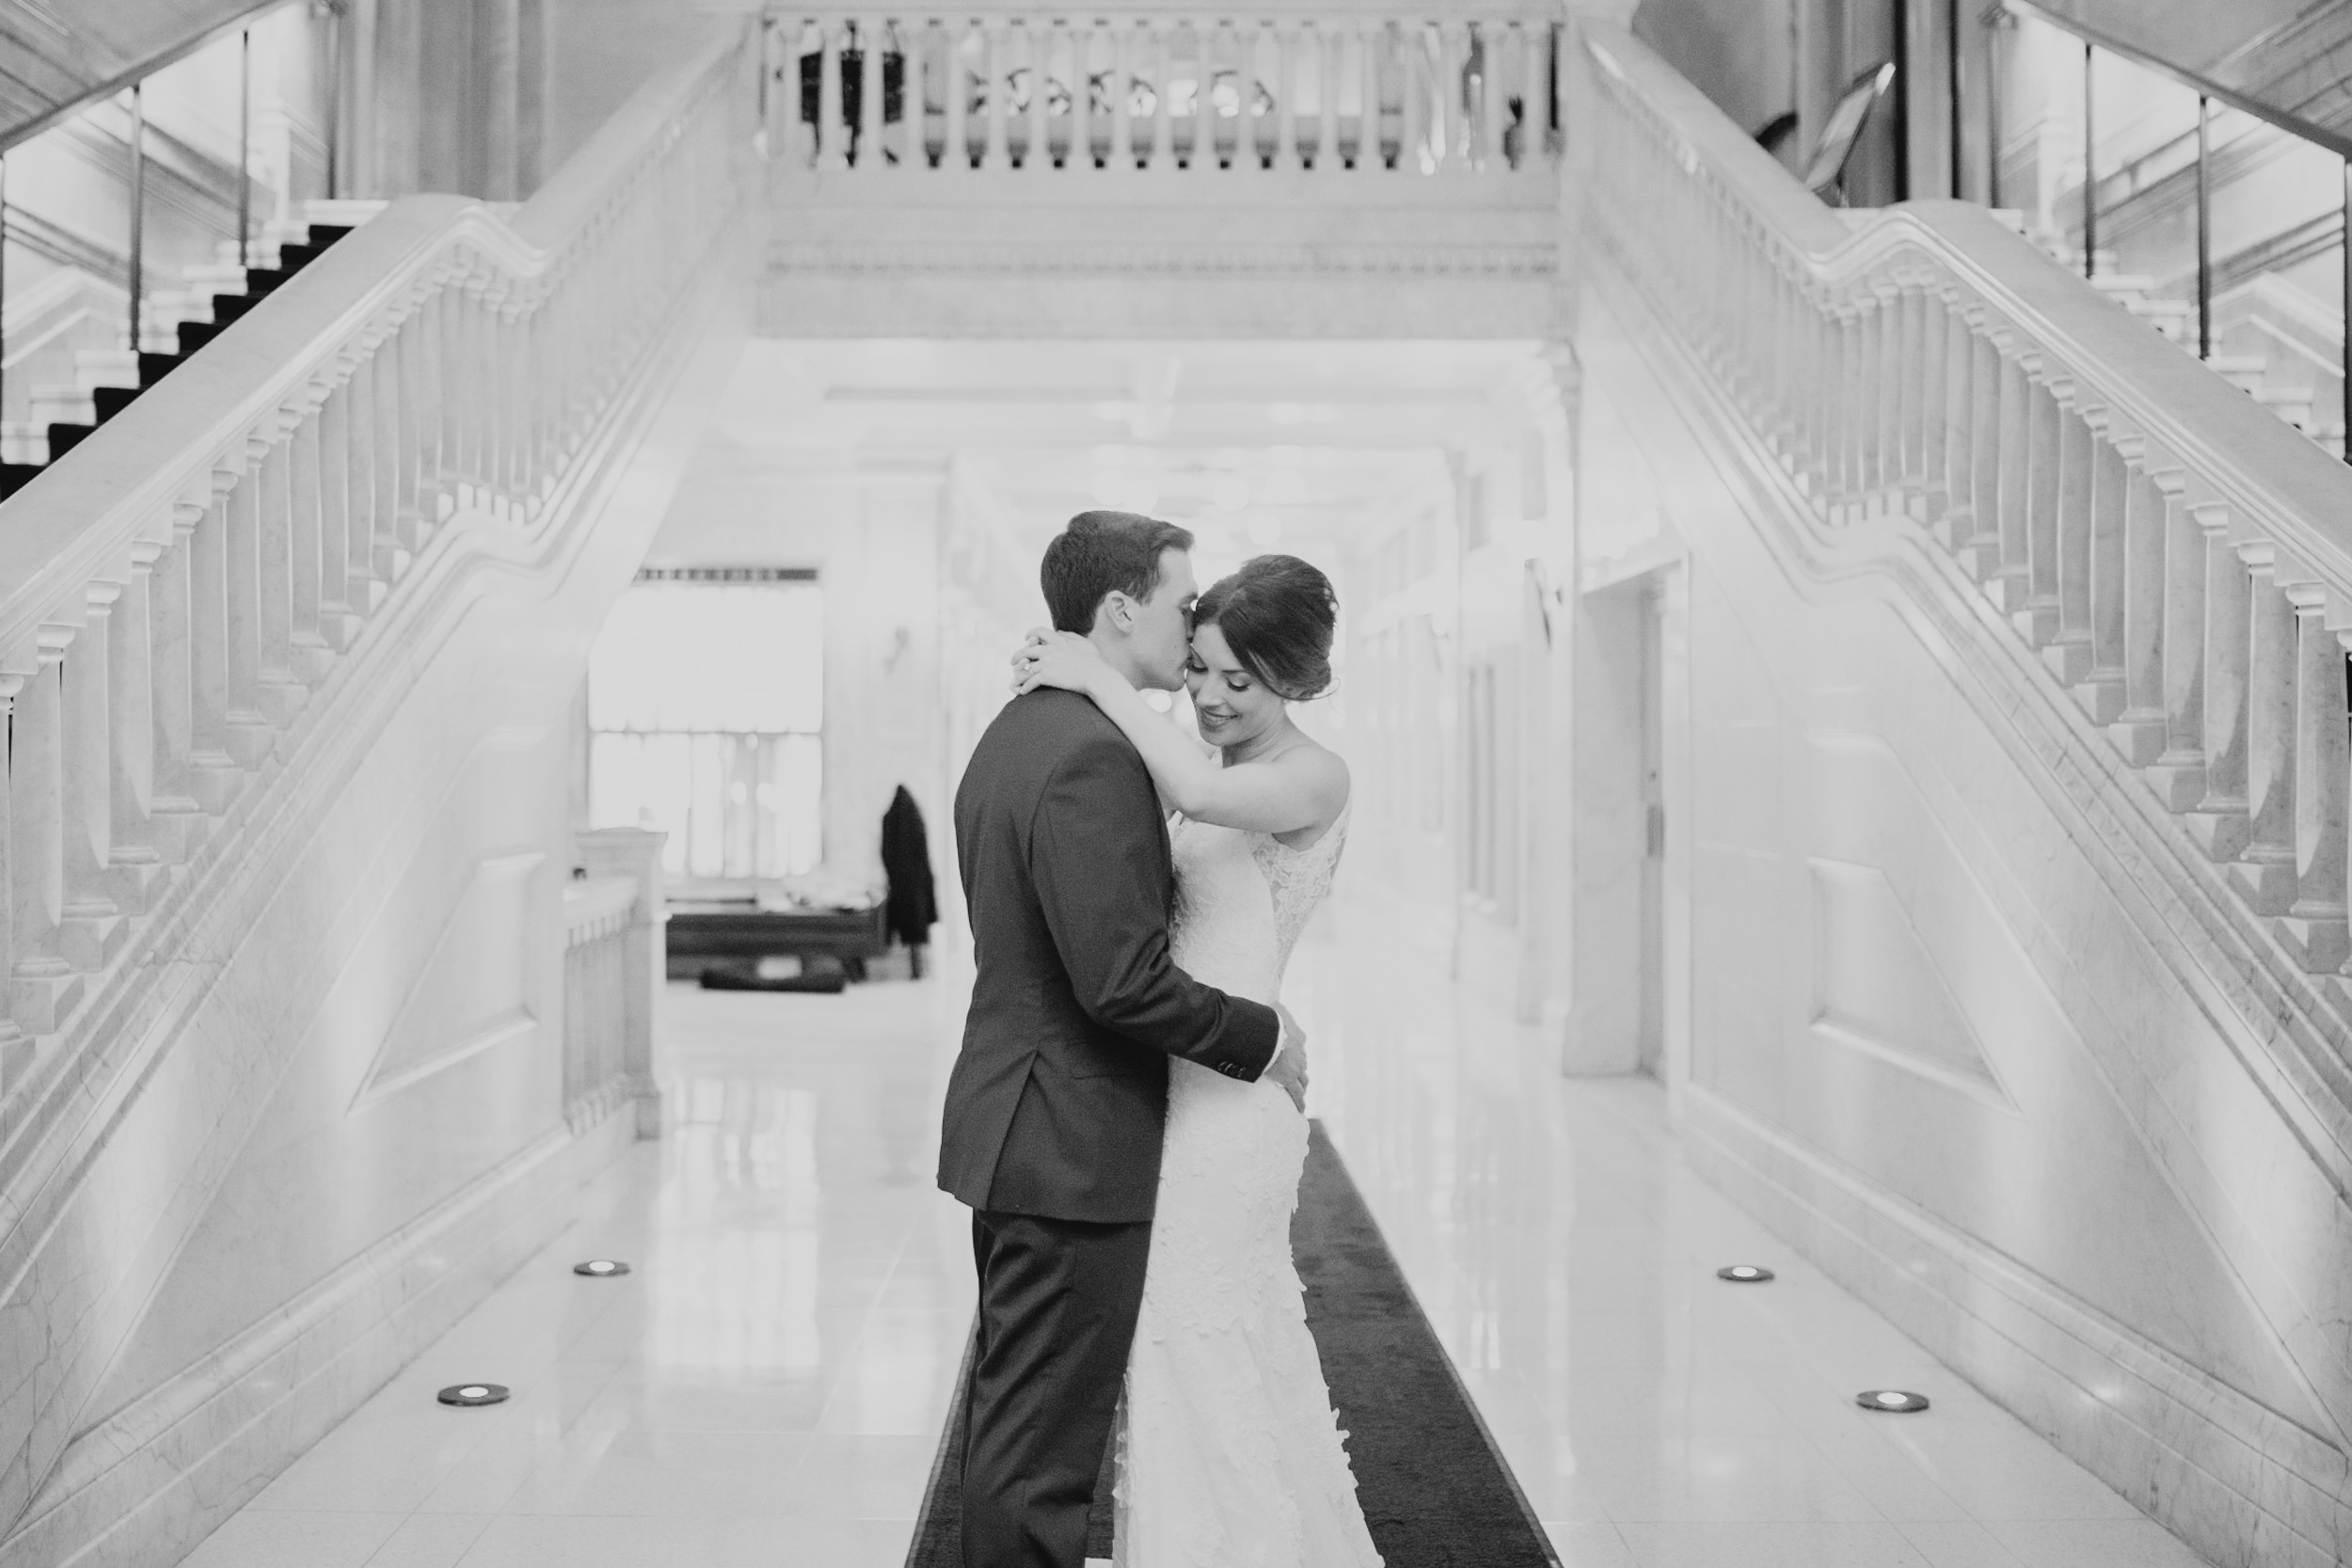 HaroldWashingtonLibraryWedding_Polly C Photography 1704141345.jpg